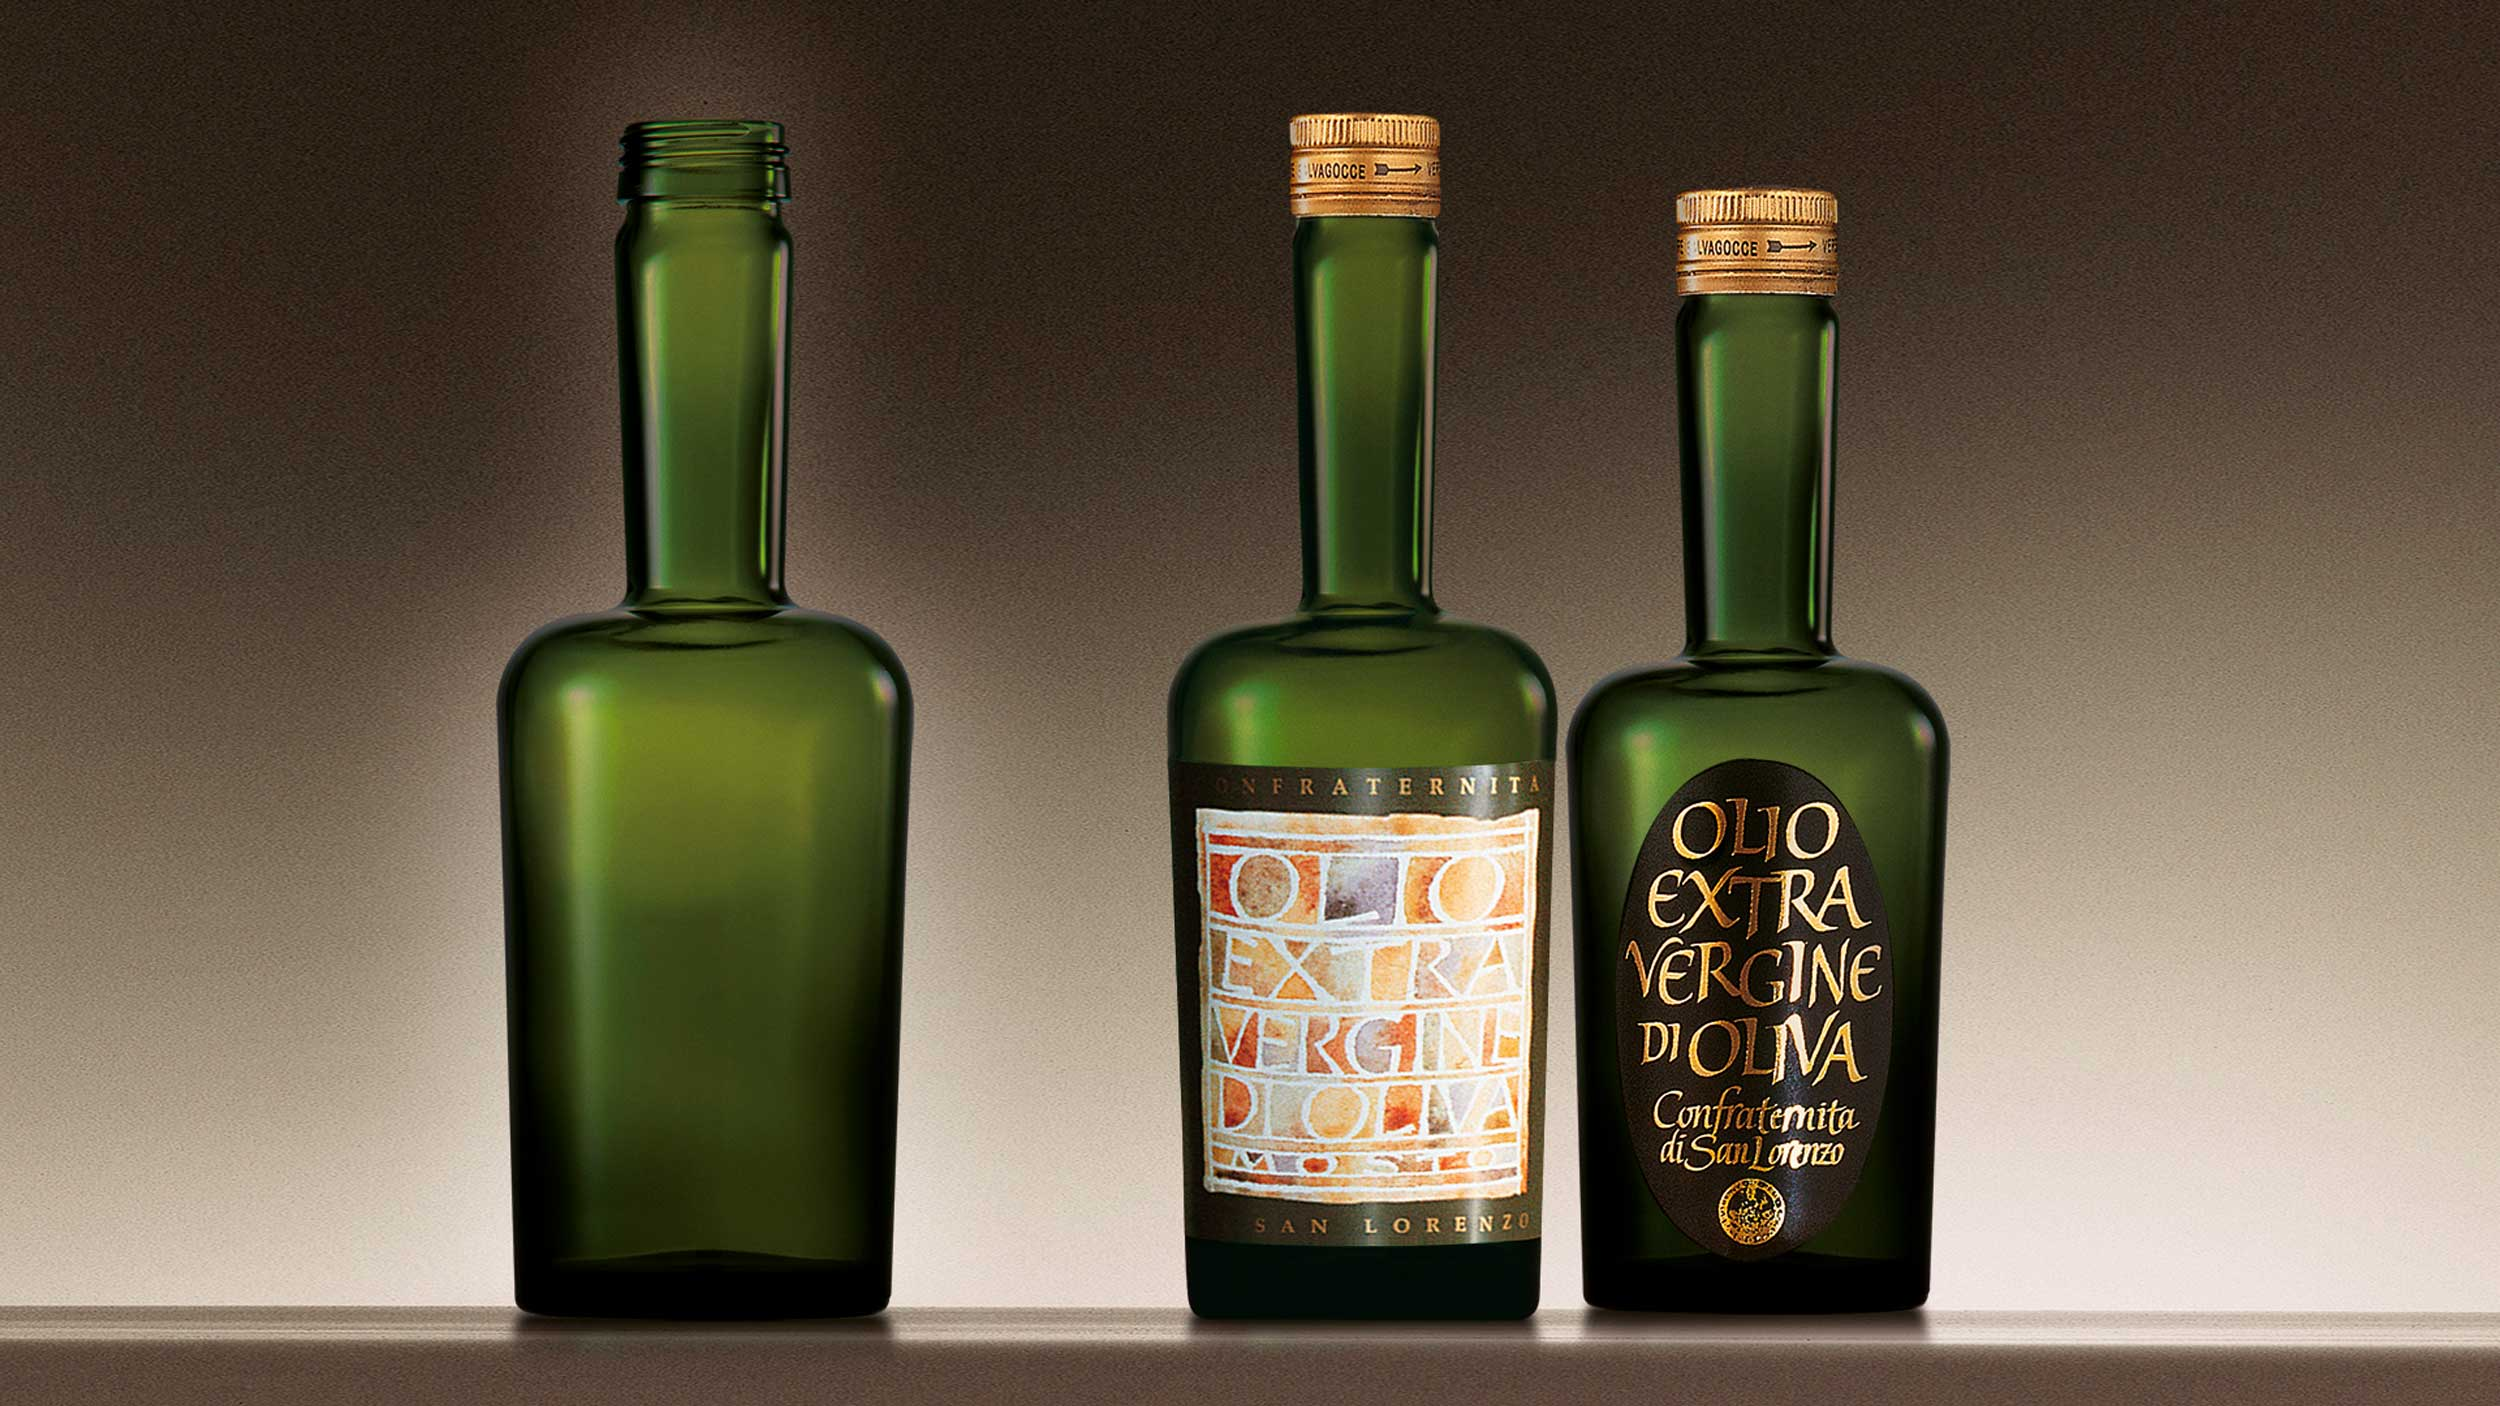 Confraternita di San Lorenzo bottle design